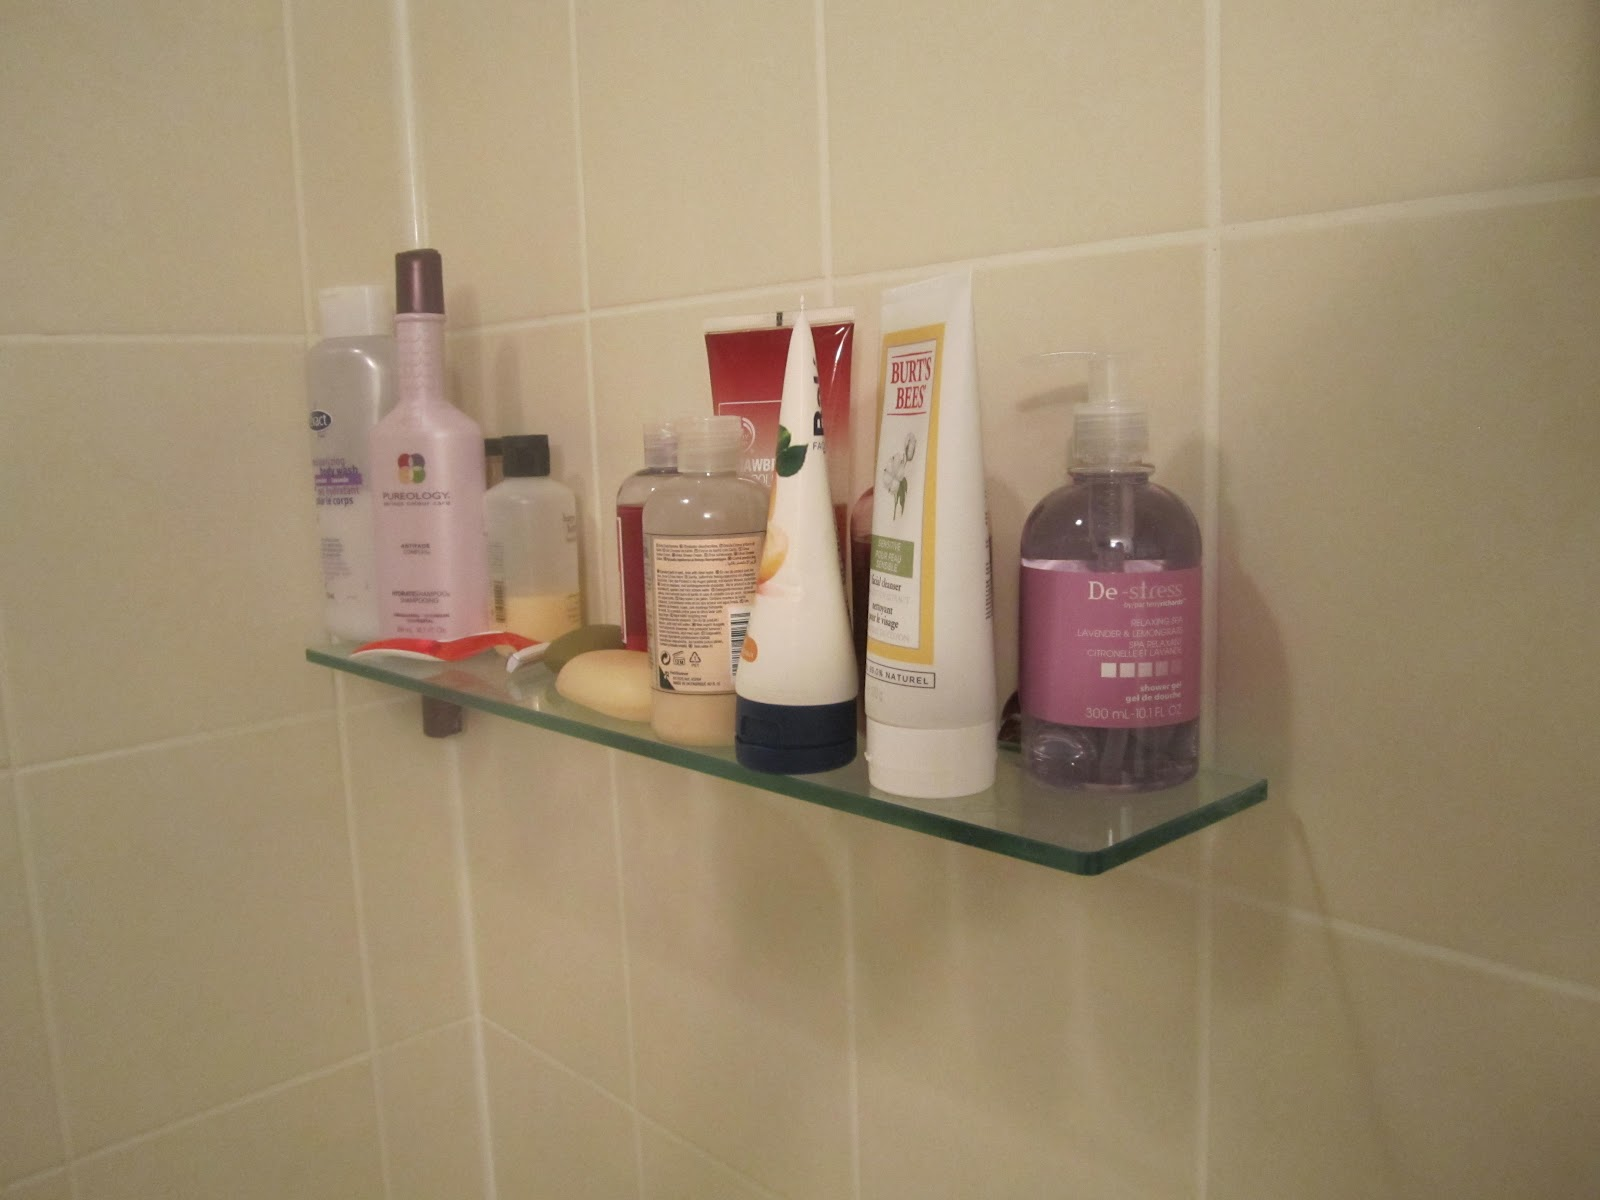 Bathroom Shower Caddy | what to wear with khaki pants